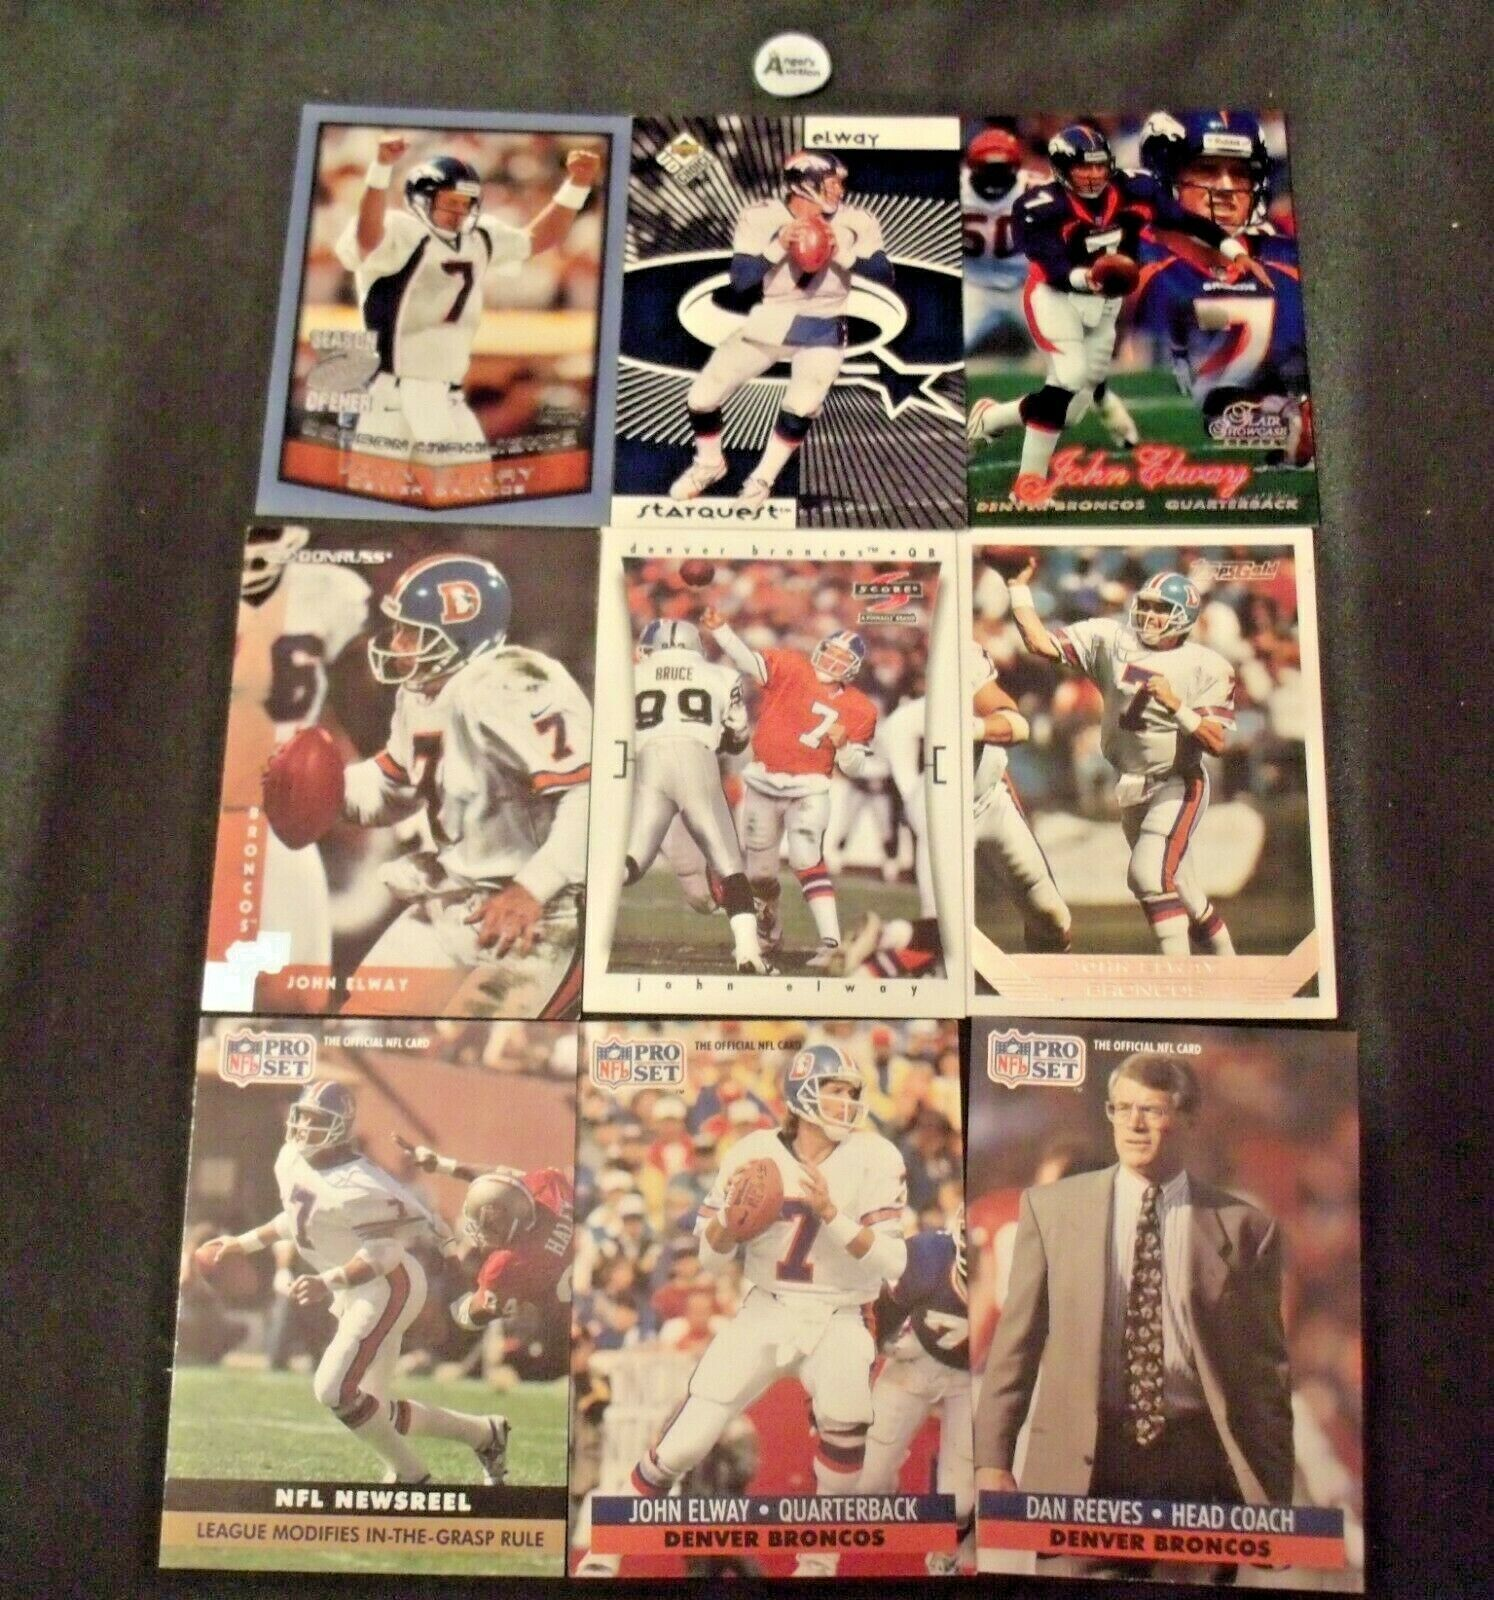 John Elway #7 Denver Broncos and Dan Reeves Trading Cards AA-19FTC3005a Vintage